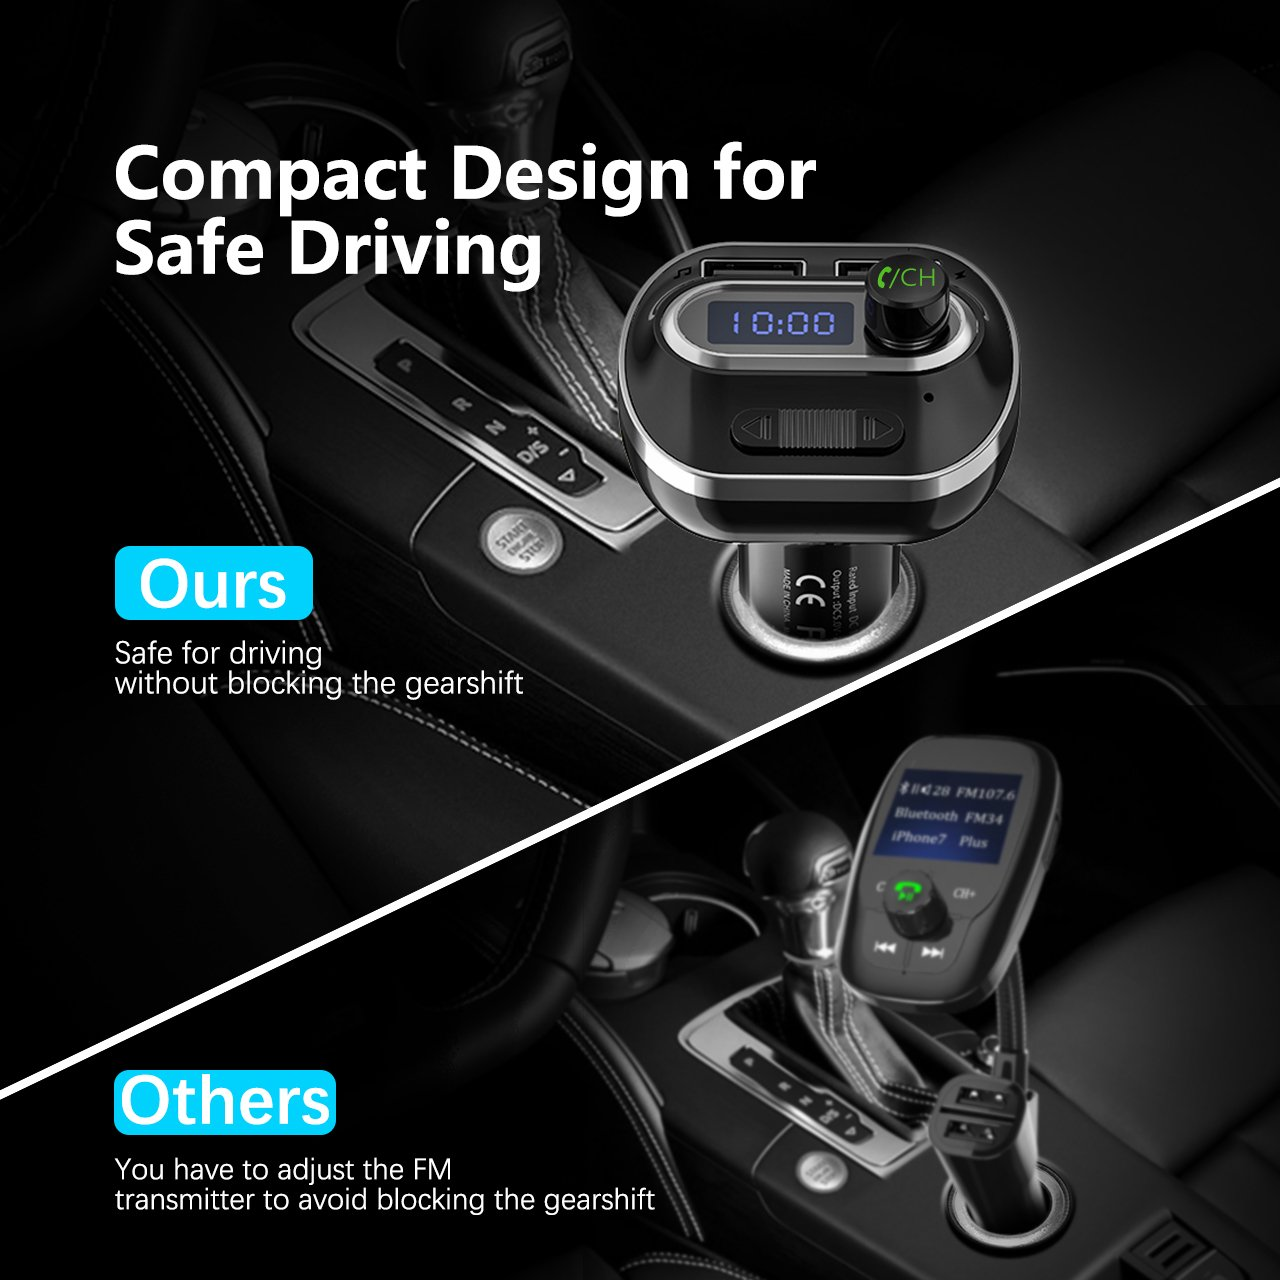 VicTsing (Upgraded Version) V4.1 Bluetooth FM Transmitter for Car, Wireless Radio Transmitter Adapter with Music Player Support Aux Output Input, TF Card and U-Disk, Hands Free and Dual USB Ports by VicTsing (Image #2)